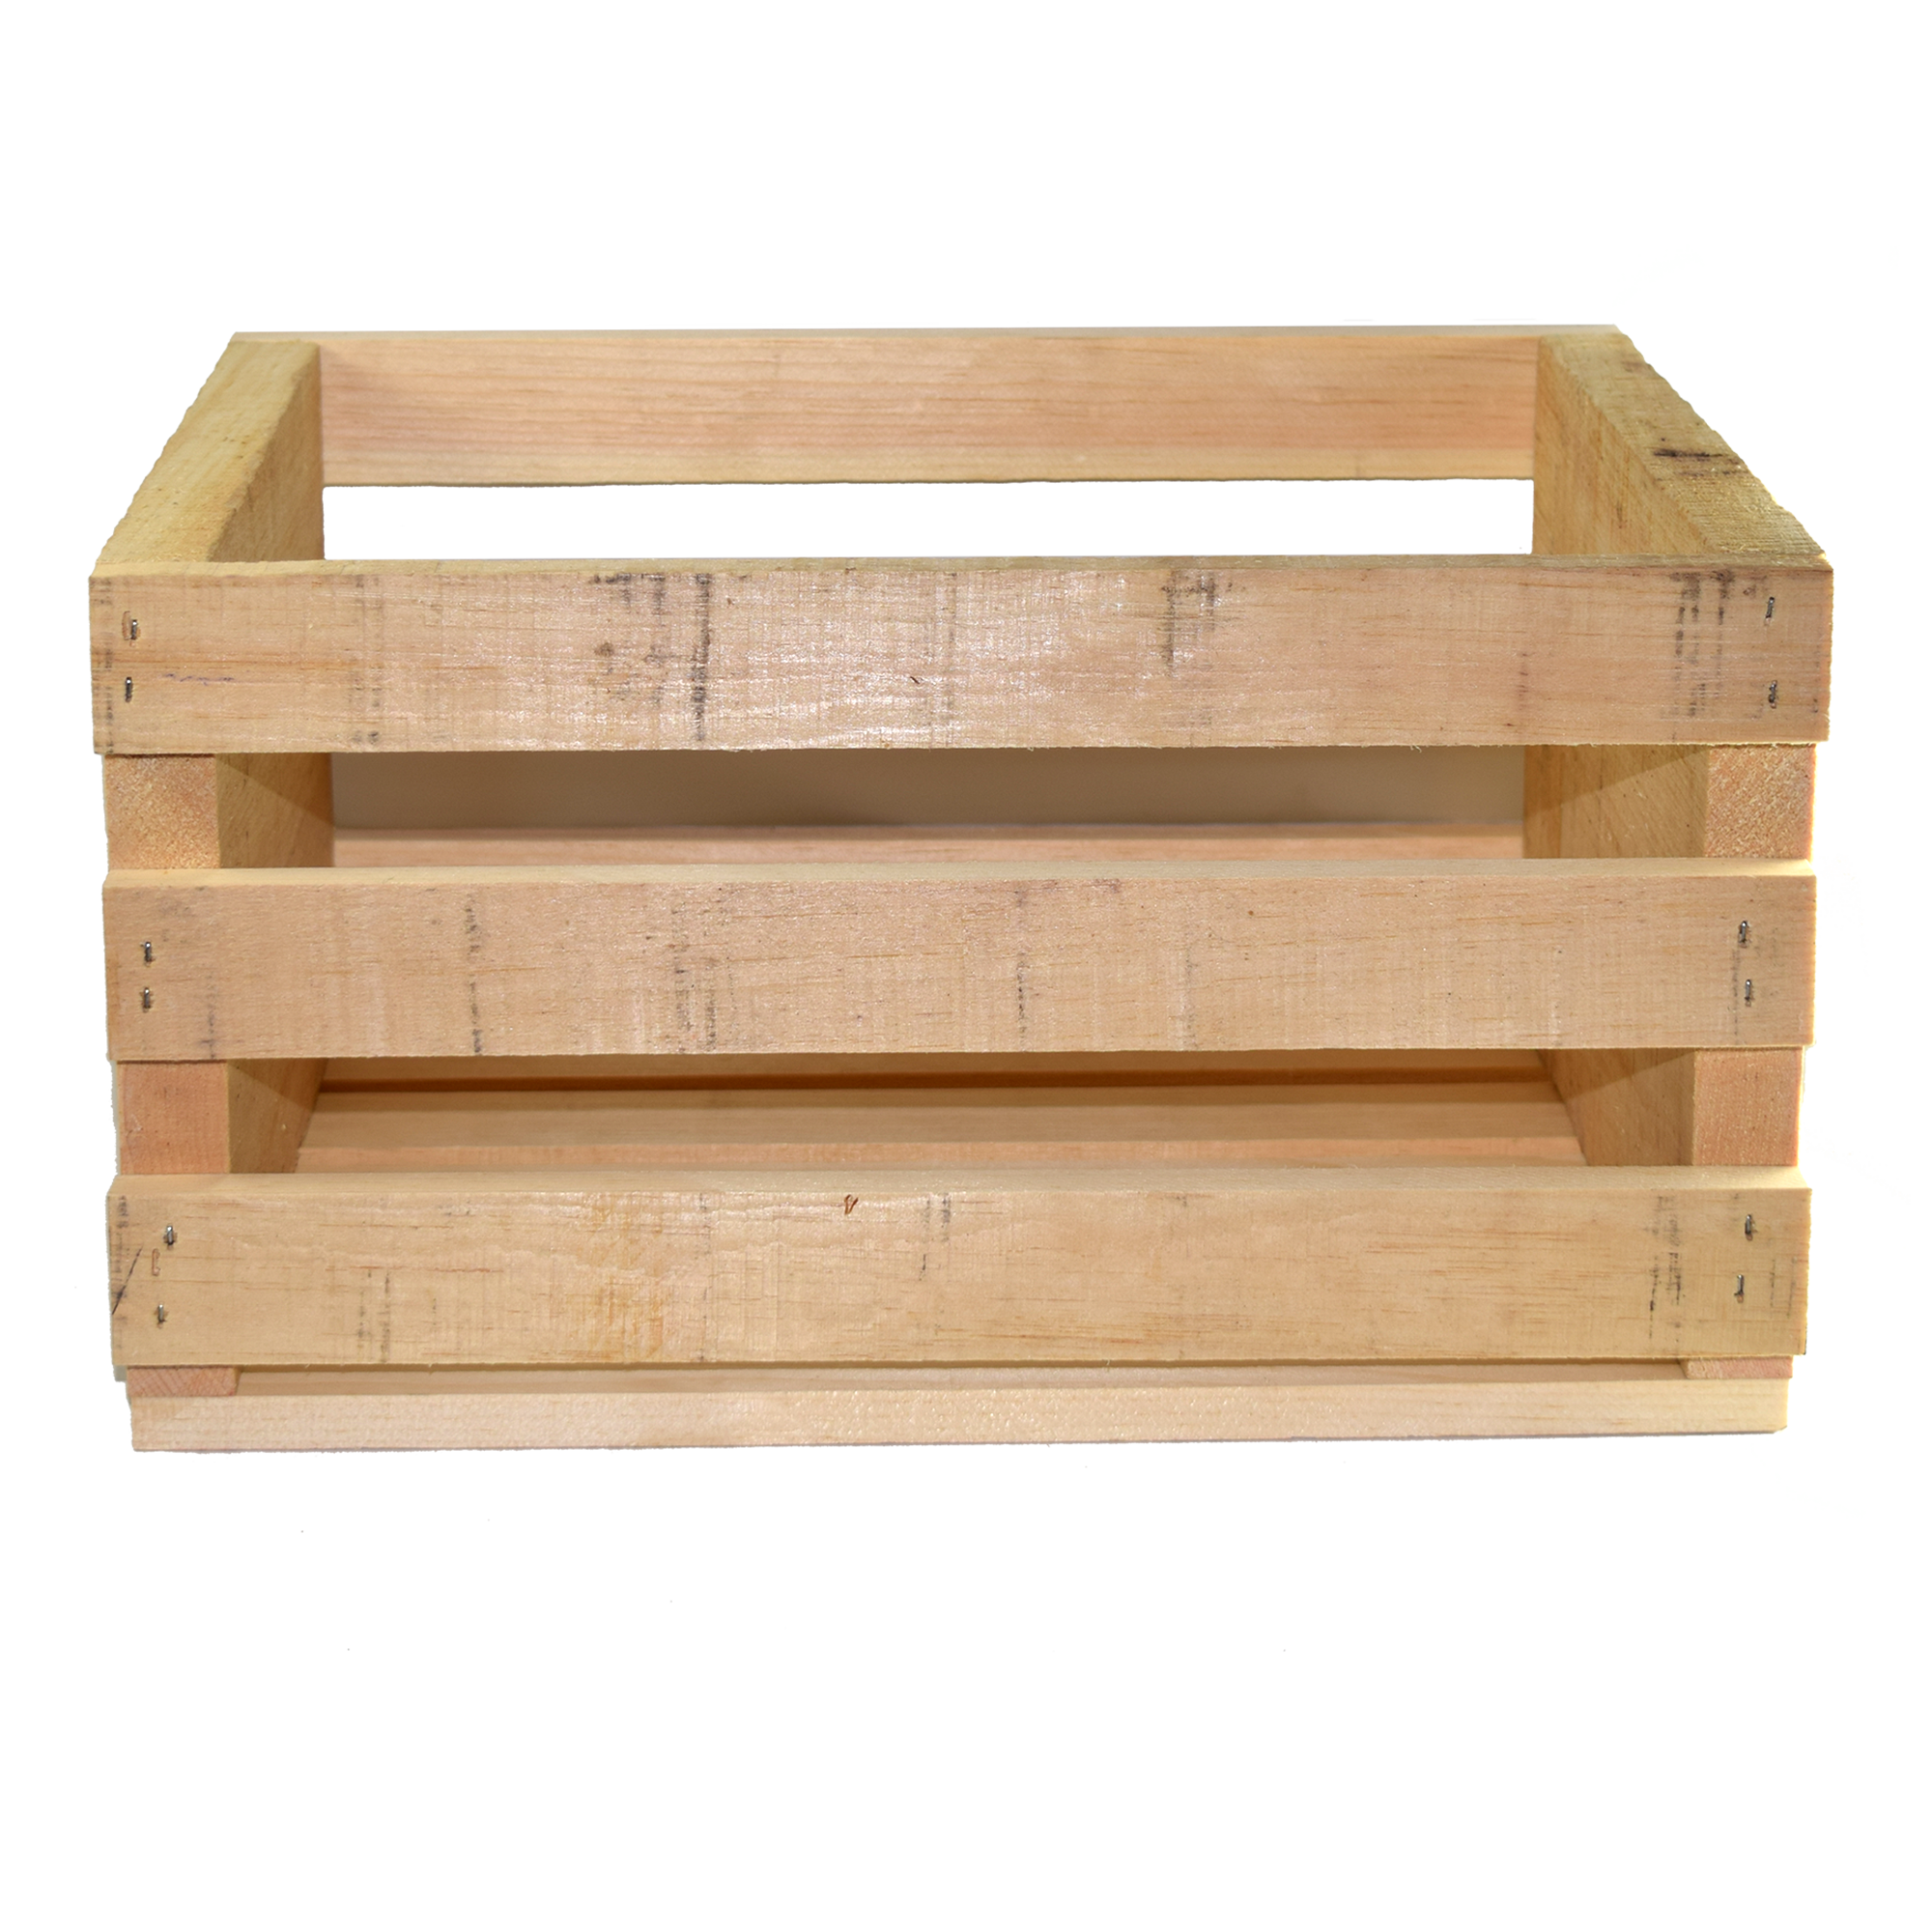 Wood crate png. Rustic wooden in the